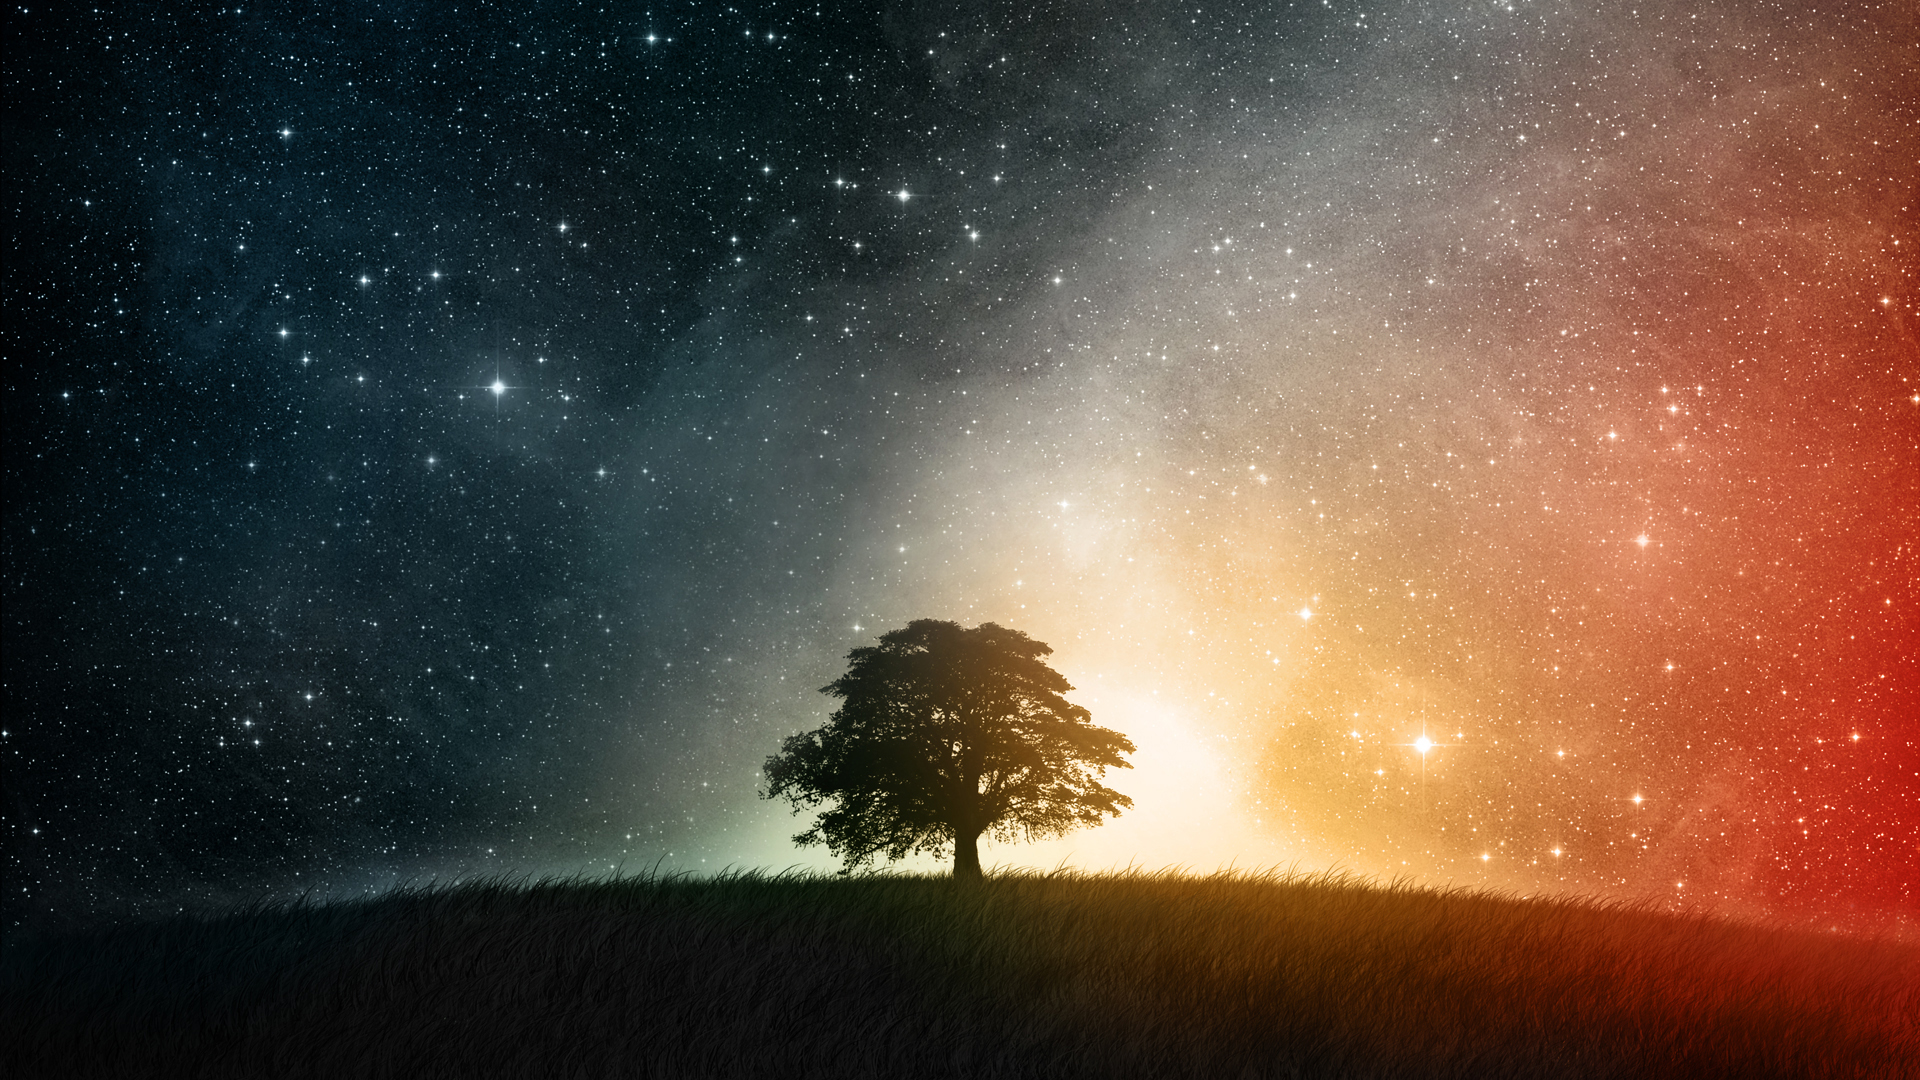 Lonesome in the Galaxy Wallpaper